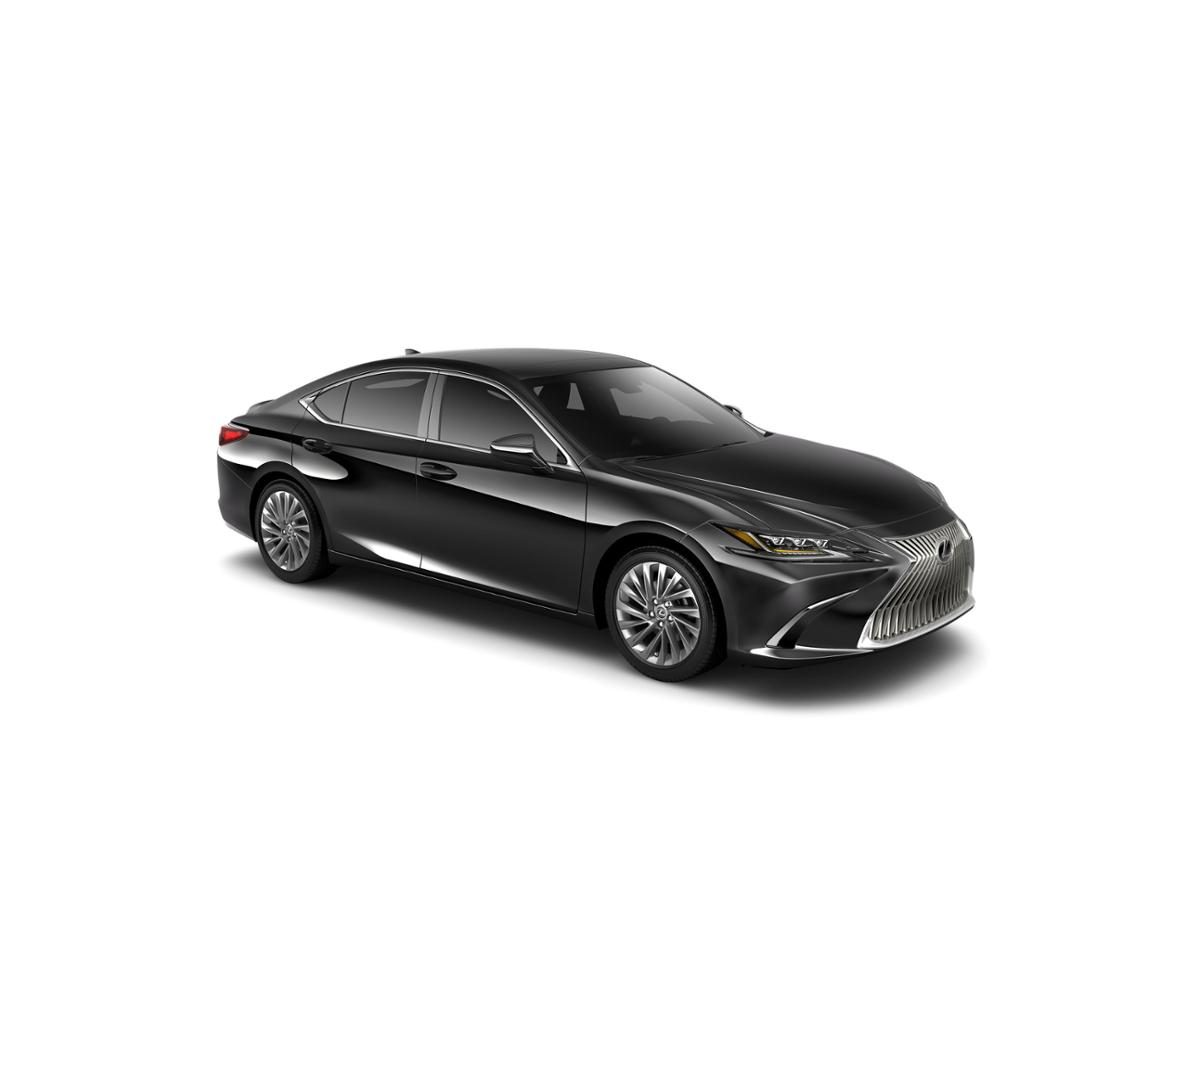 New 2019 Lexus ES 350 For Sale In Farmingdale, NY